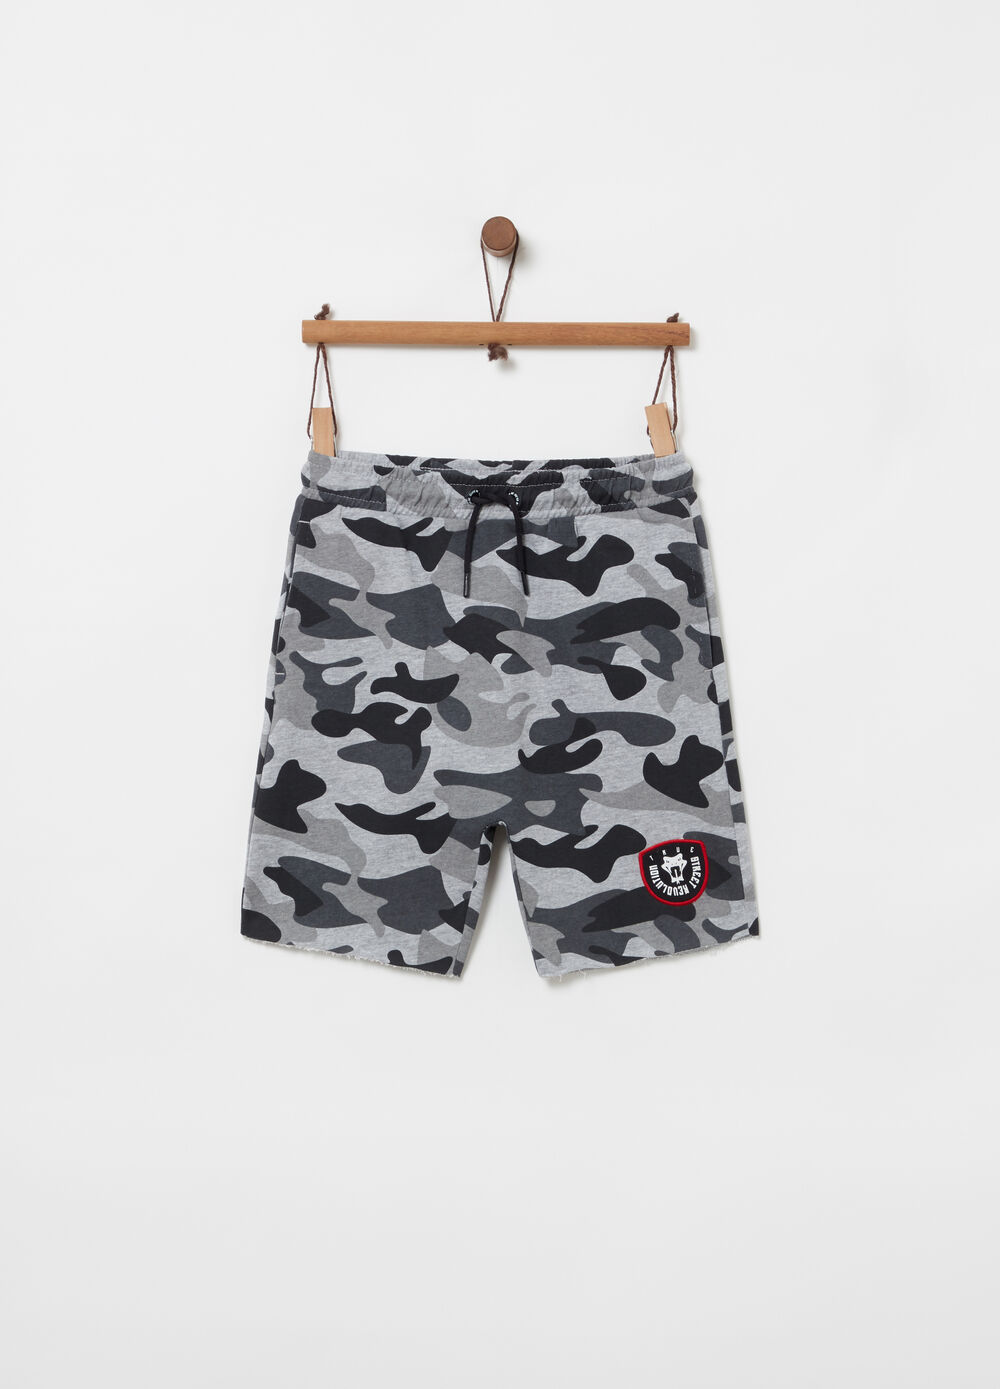 Shorts loose fit cavallo basso camouflage